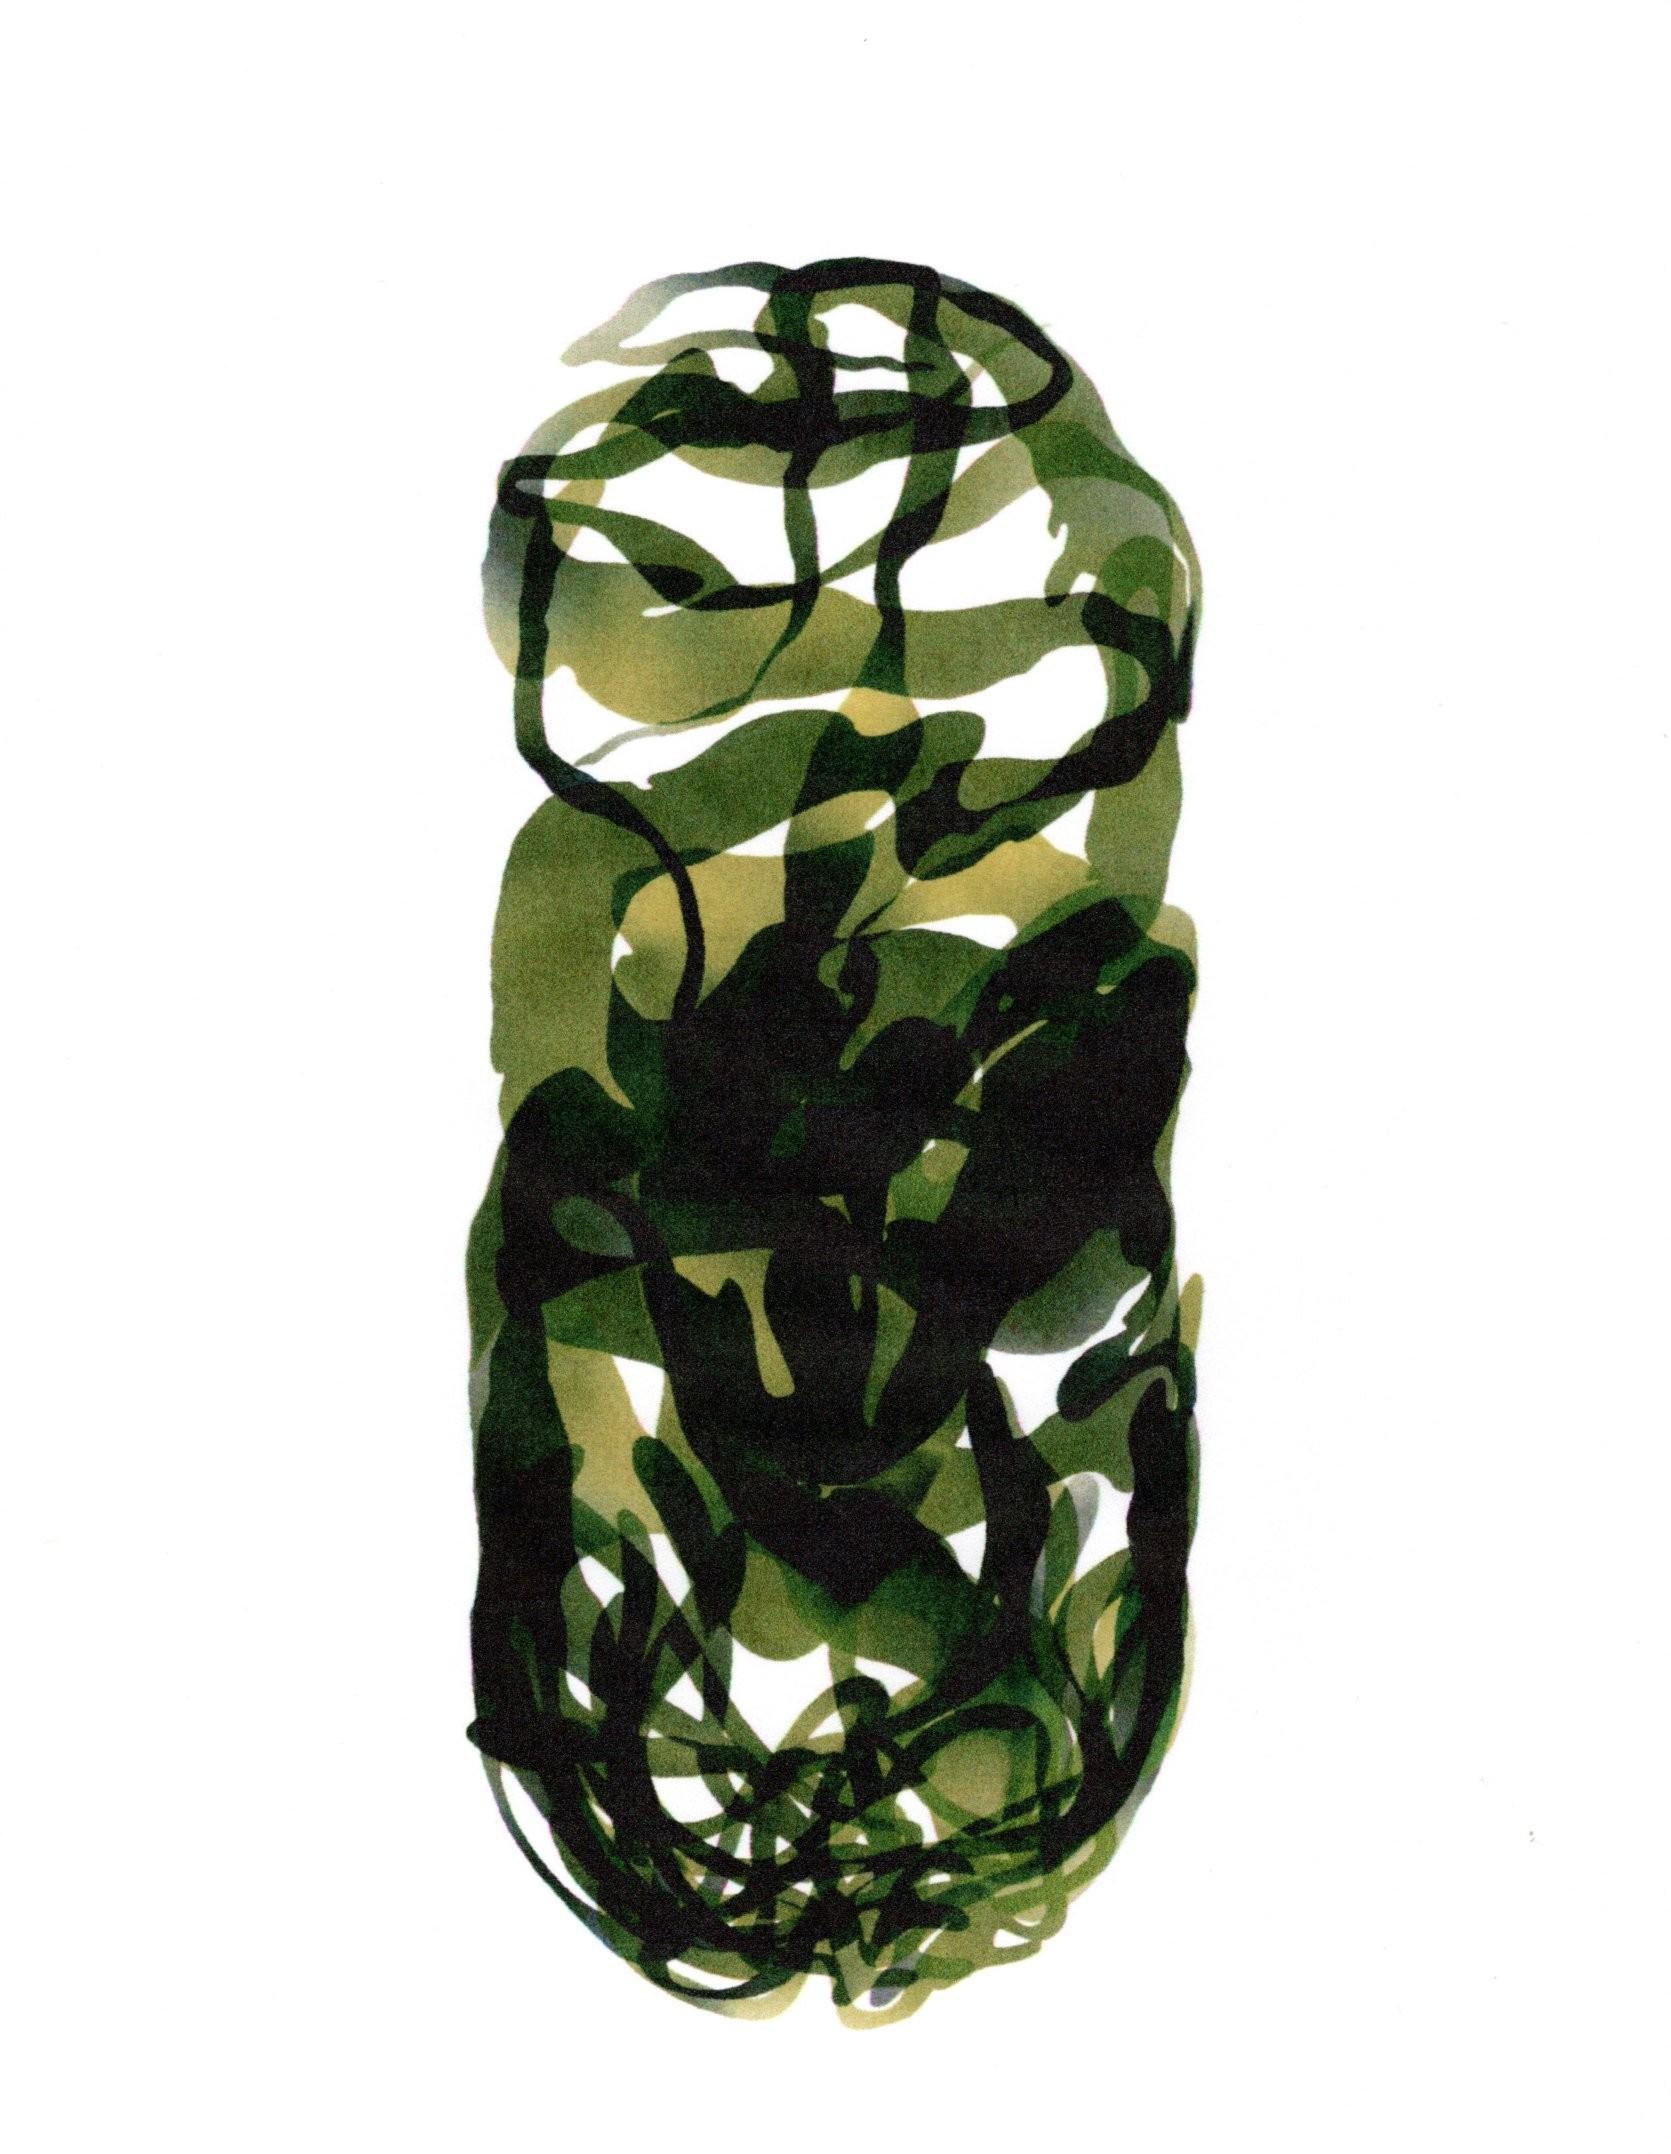 The imagery depicts marine kelp that is confined to the shape of a capsule, overlapping and intertwined with itself.